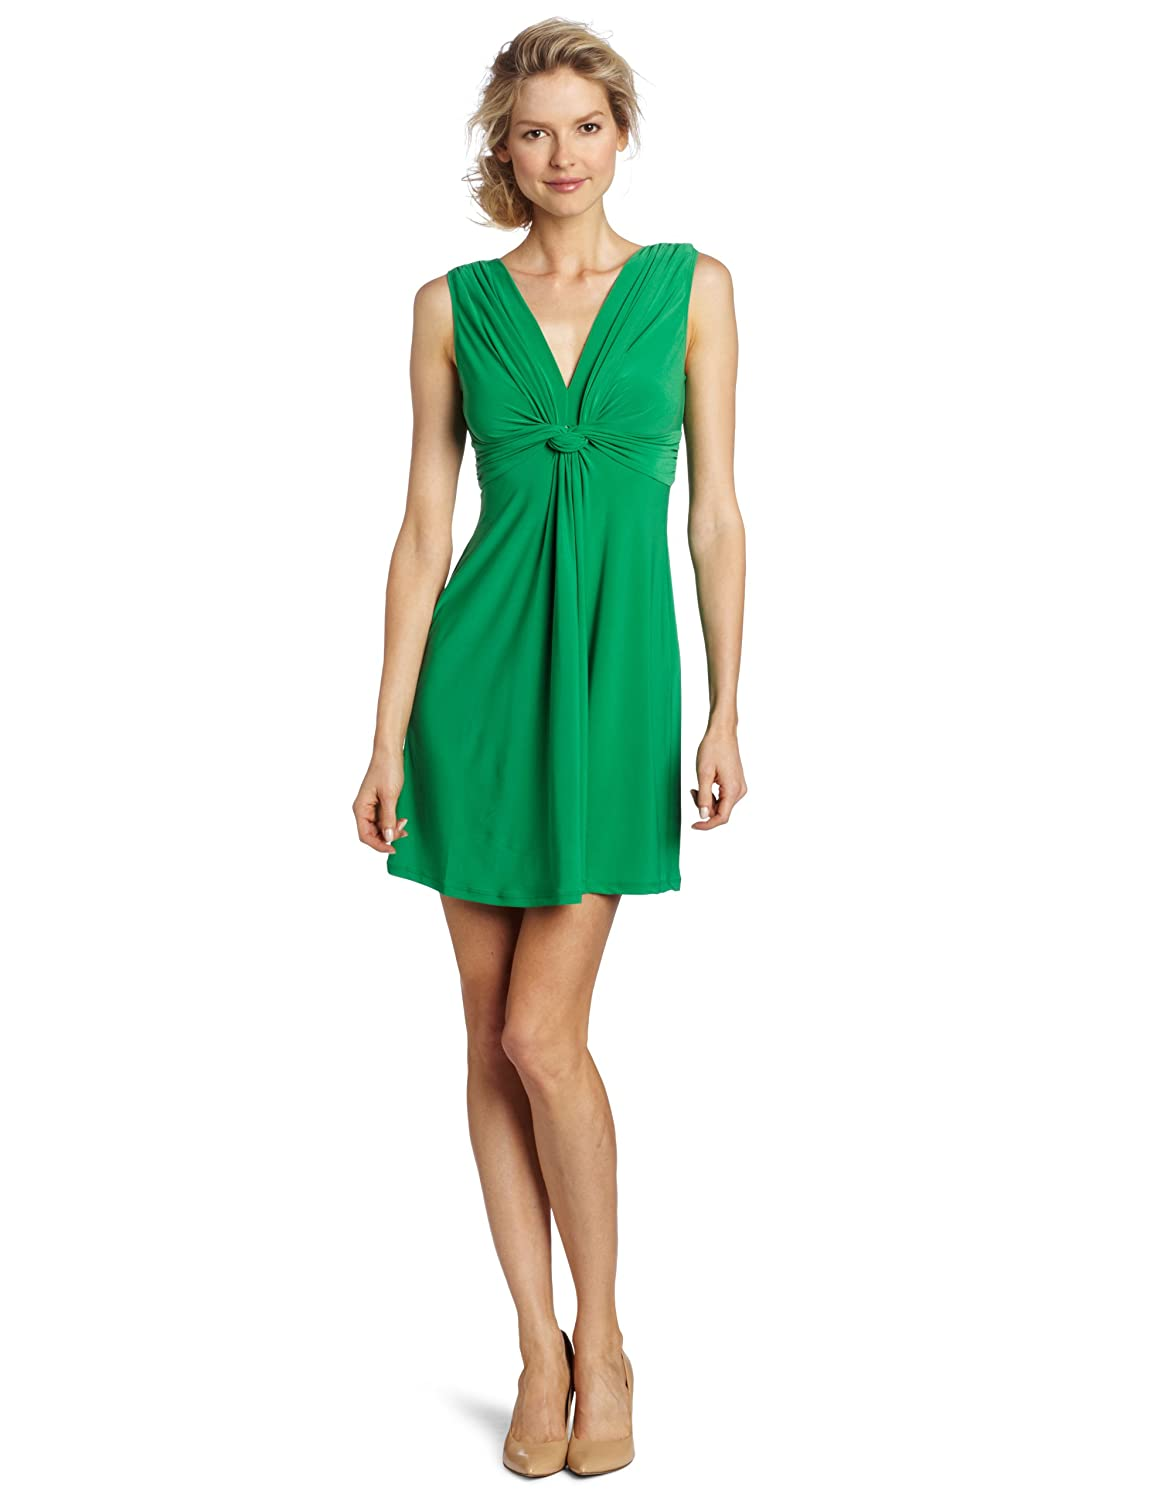 Wrapper Women's V-Neck Dress With Gathered Knot, Kelly Green, Medium/8